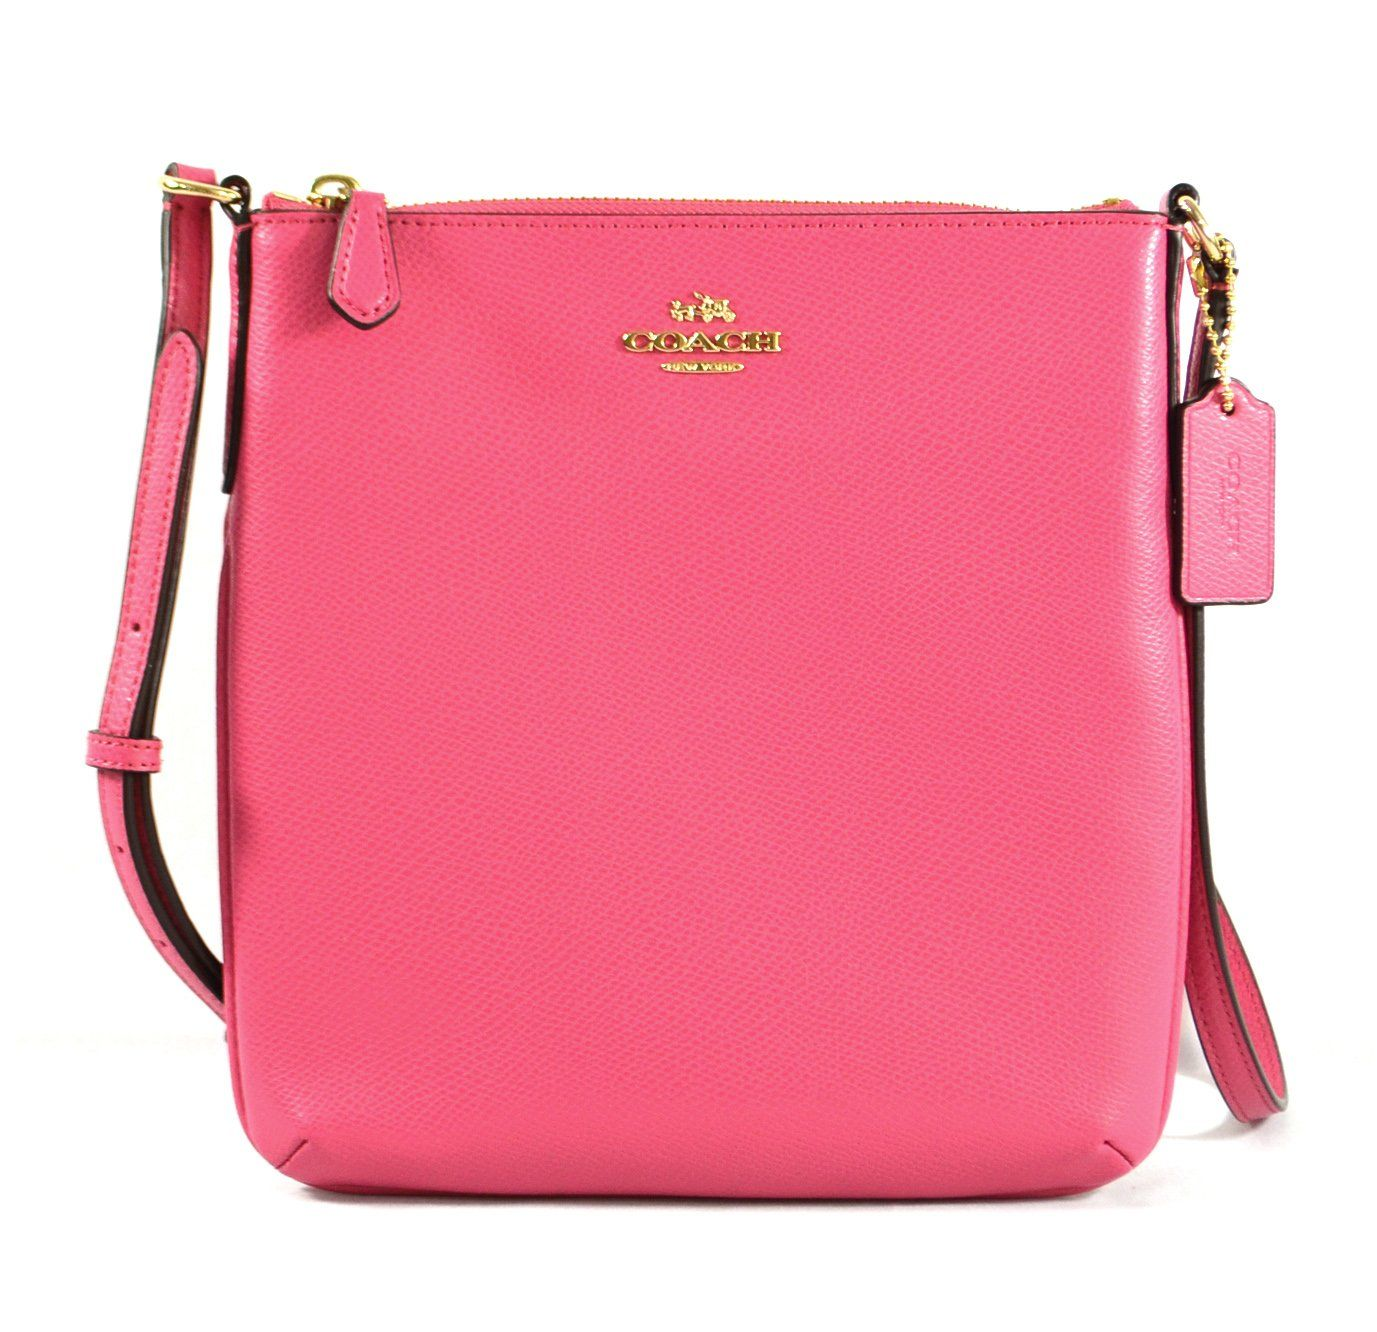 """Coach Crossgrain Leather North South Crossbody Dahia Pink. Made of cross grain leather. Strap for shoulder or cross body wear. Zip top closure, fabric lining. Inside 1 slip pocket, outside 1 back slip pocket. 8.25"""" (L) x 8.75"""" (H) x 1""""(D)."""